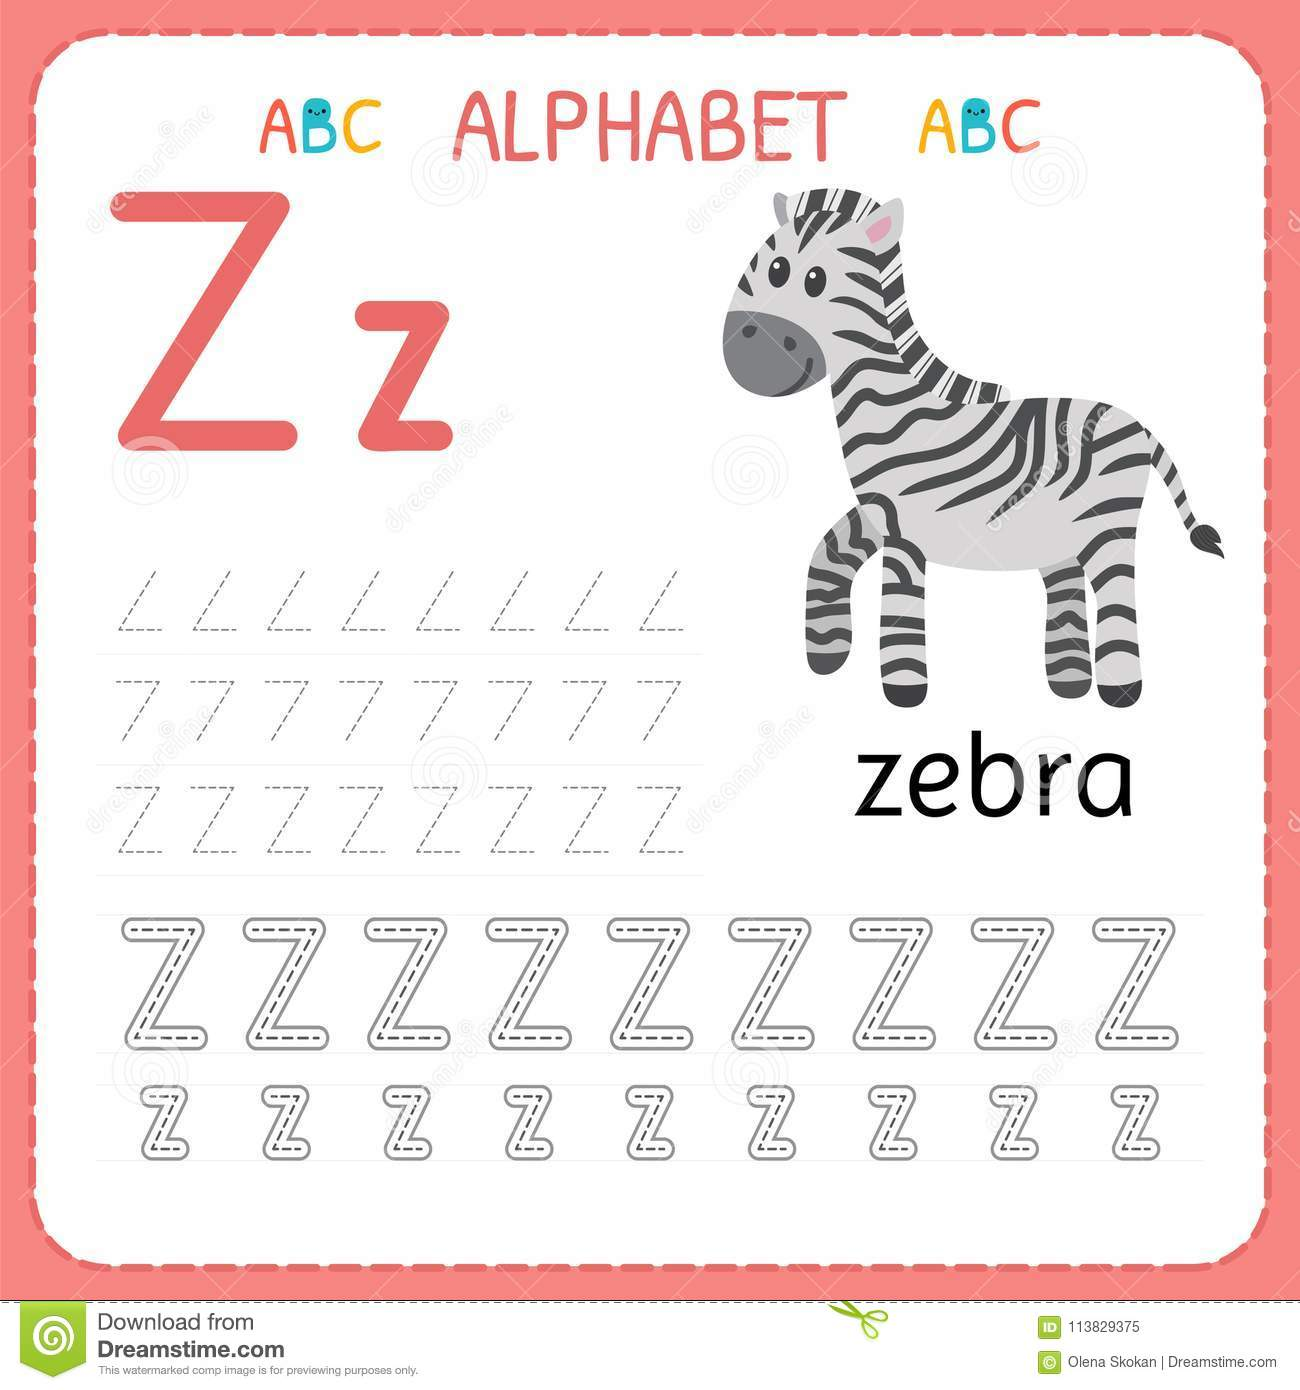 Alphabet Tracing Worksheet For Preschool And Kindergarten Writing Practice Letter Z Exercises